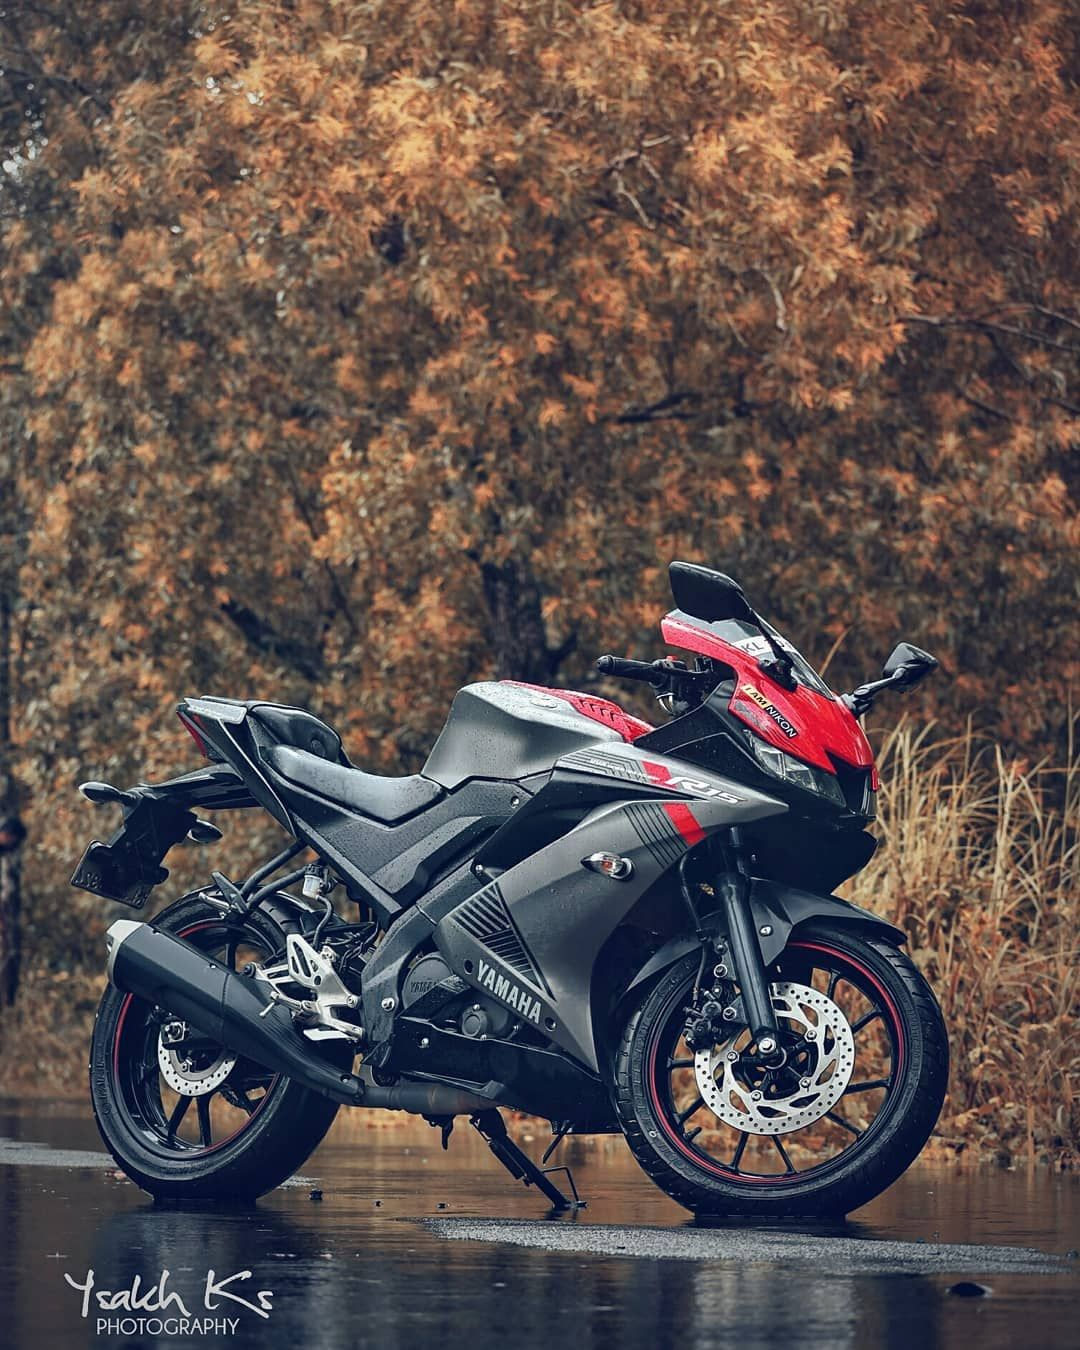 Yamaha With Images Yamaha Bikes Bike Photoshoot Bike Photography